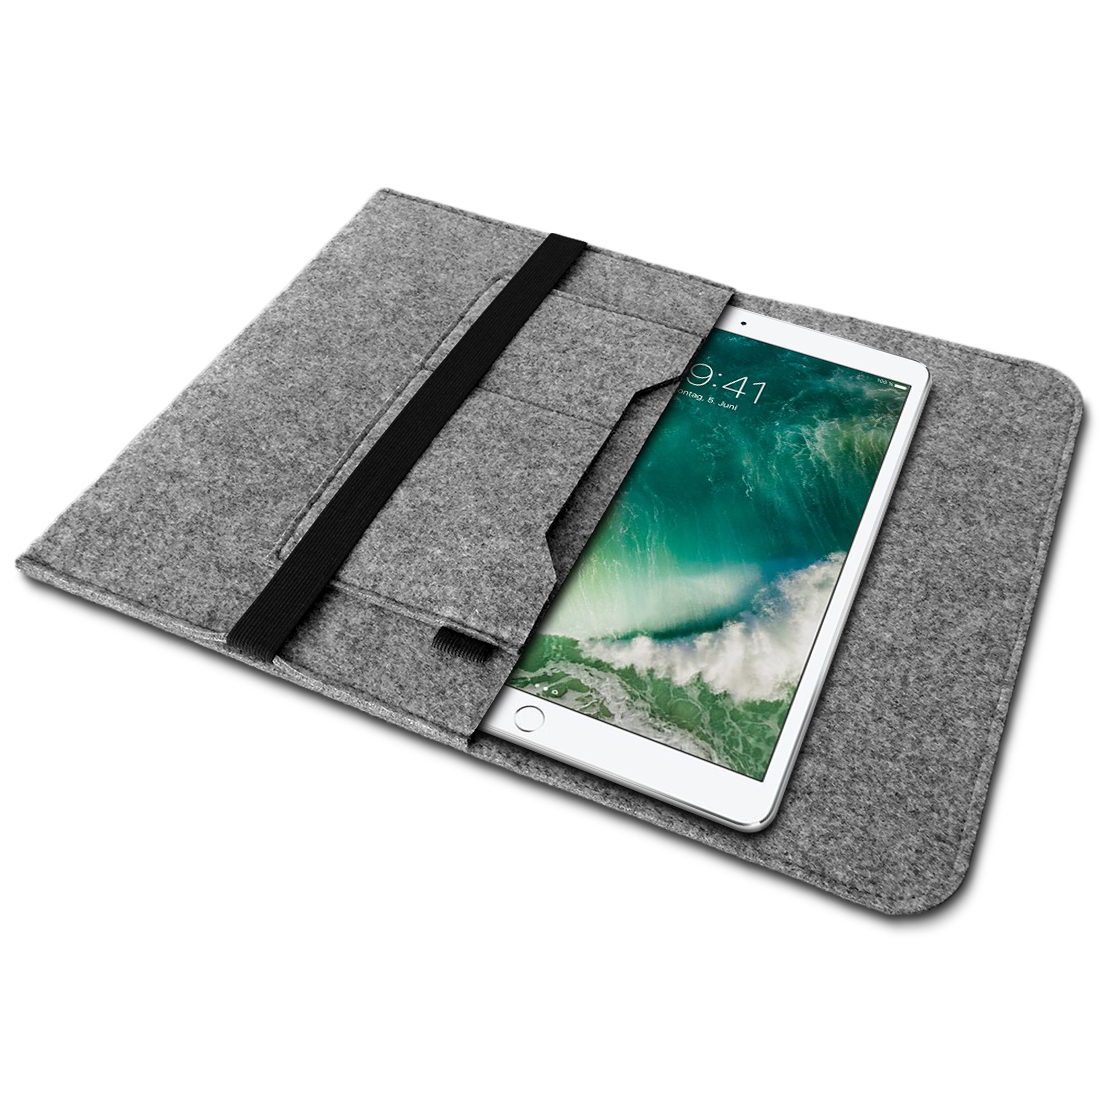 sleeve h lle f r apple ipad pro 10 5 tasche filz notebook cover laptop case grau ebay. Black Bedroom Furniture Sets. Home Design Ideas